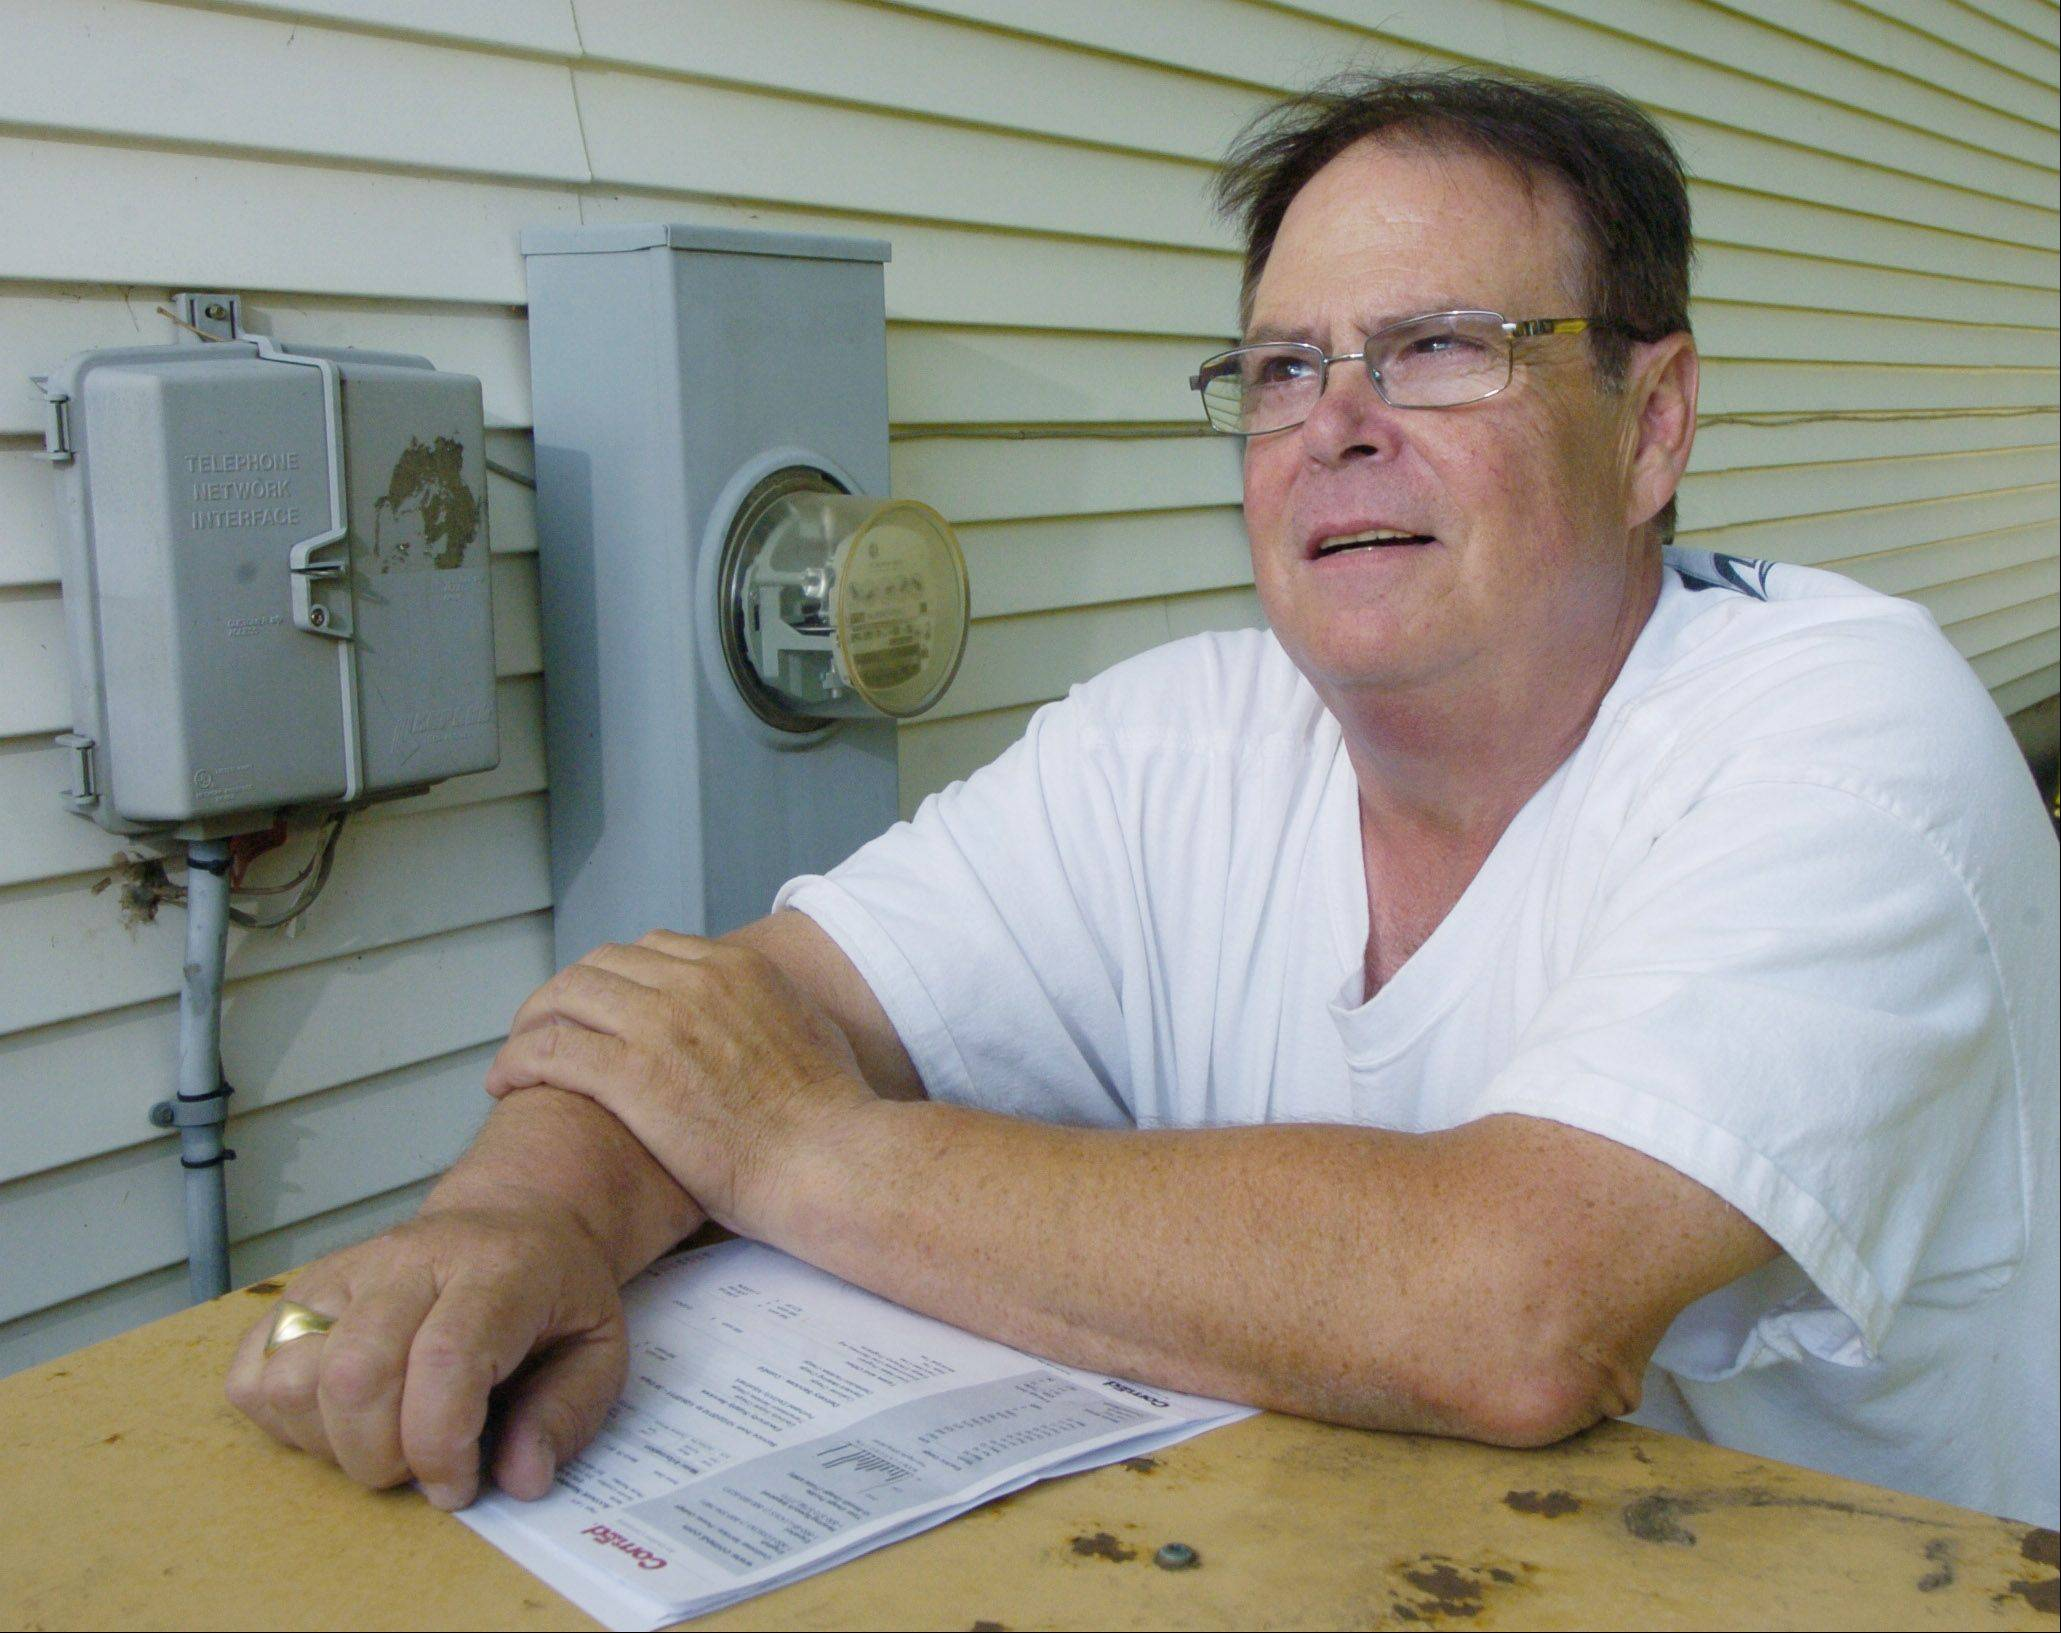 Eric Bogoff of Wheeling is considering switching from ComEd to an alternate provider of electricity.